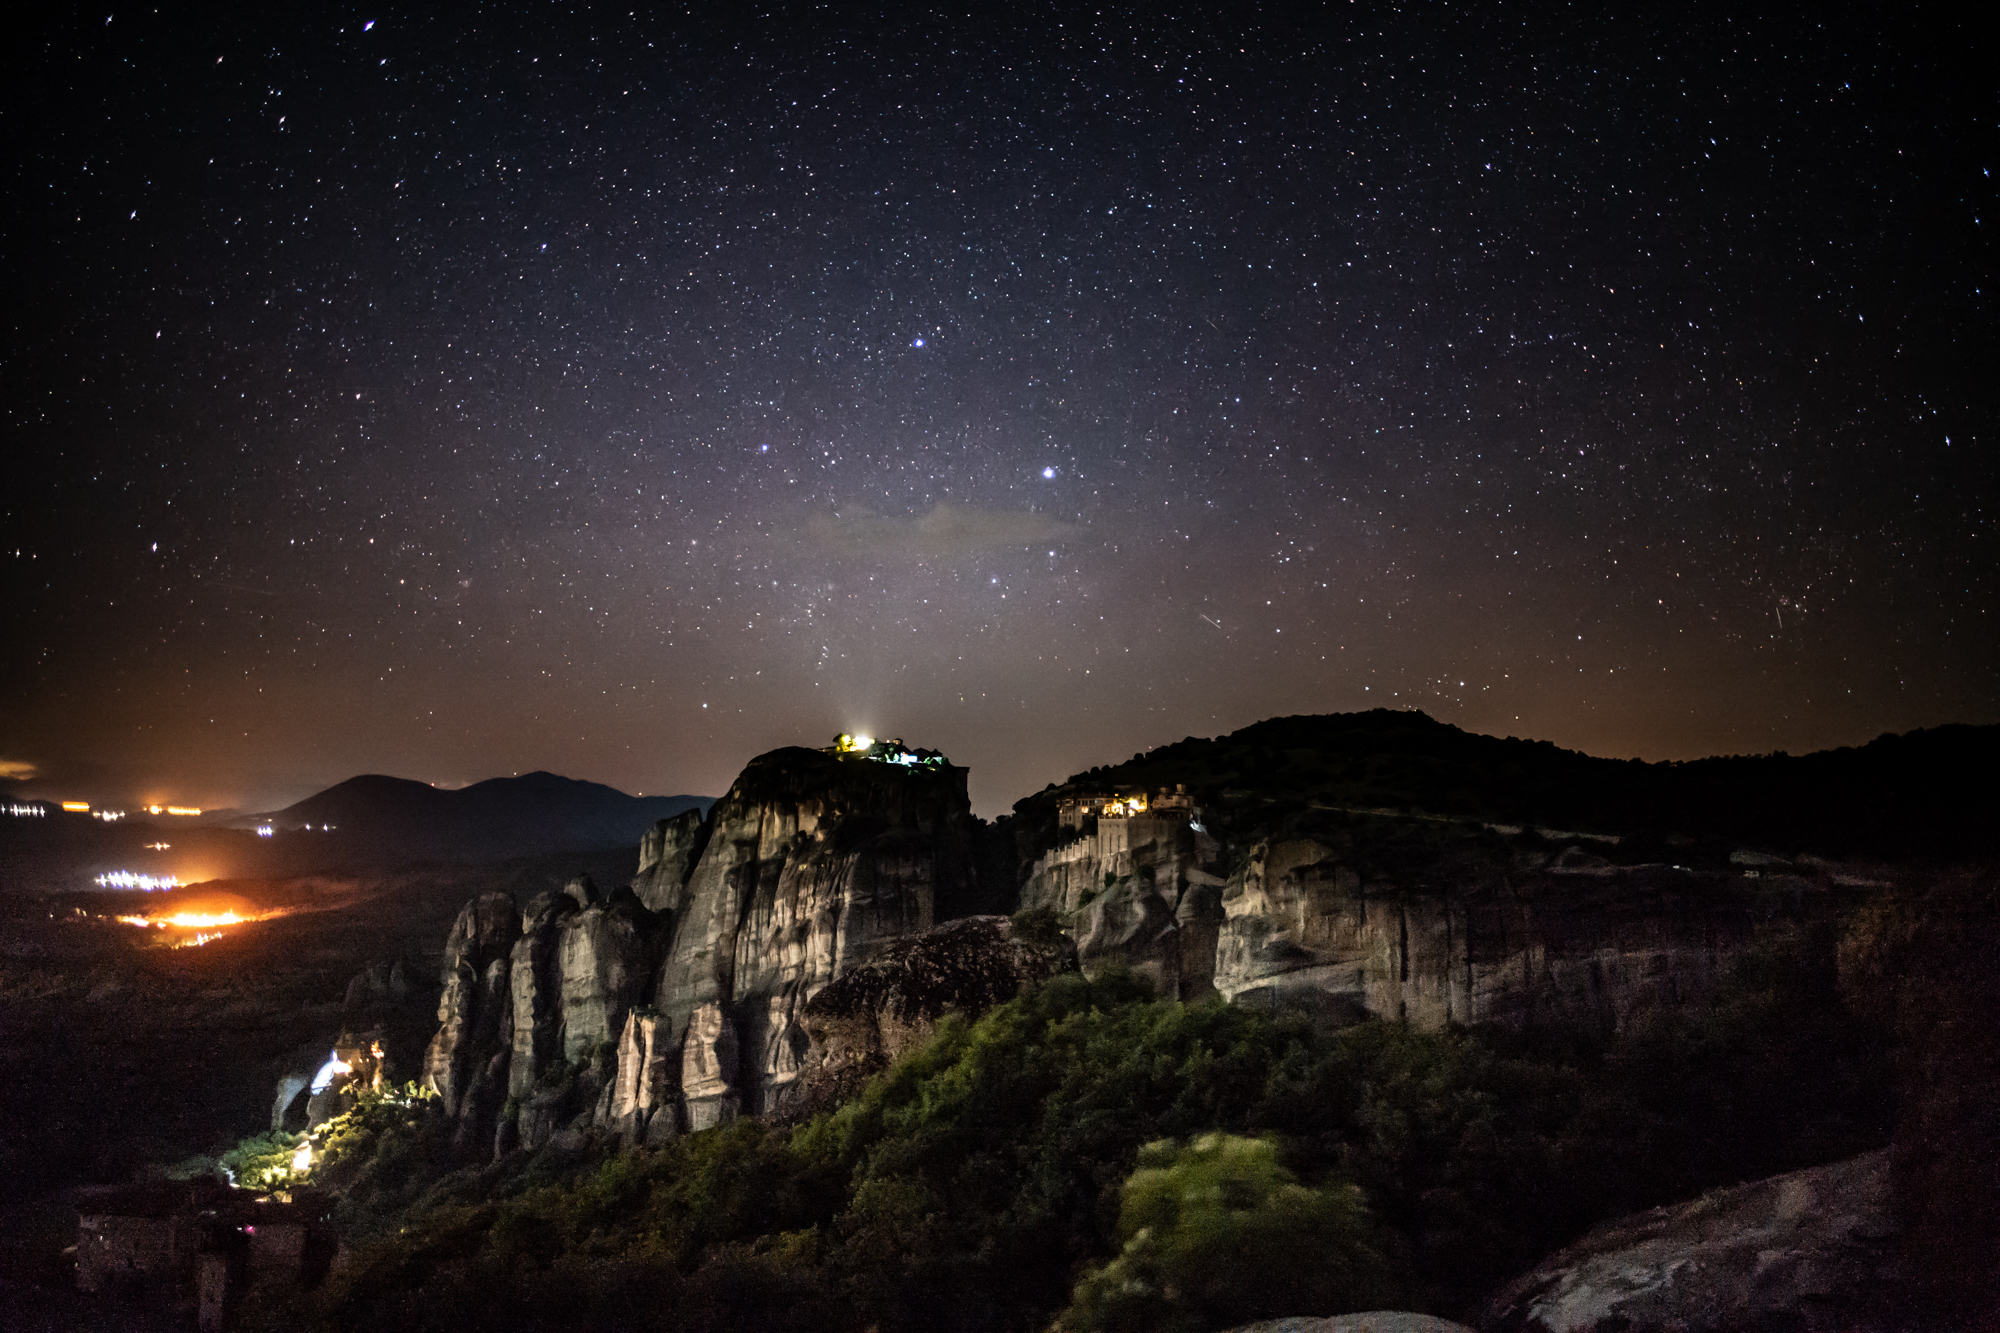 Meteora at night. Taken with the Leica M10 and 24mm Summilux. ISO 6400, 8 sec exposure. Processed in Lightroom